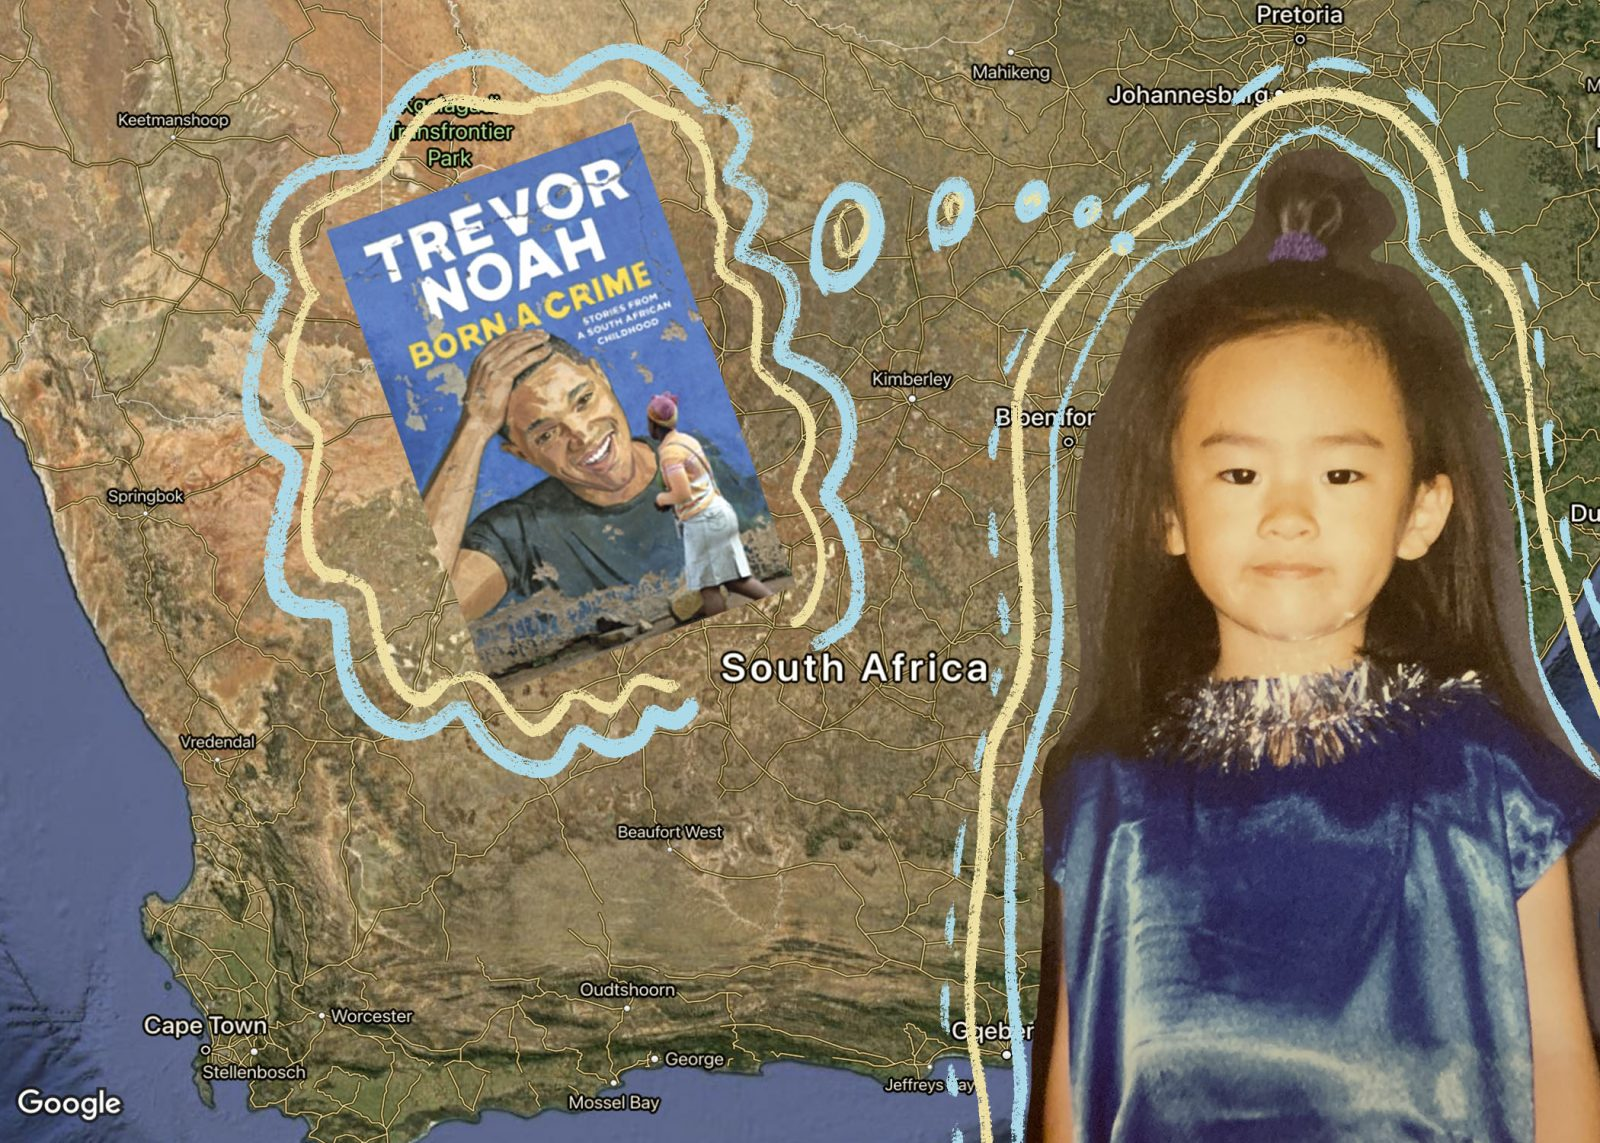 collage of young asian girl growing up in south africa and thoughts on reading born a crime by trevor noah